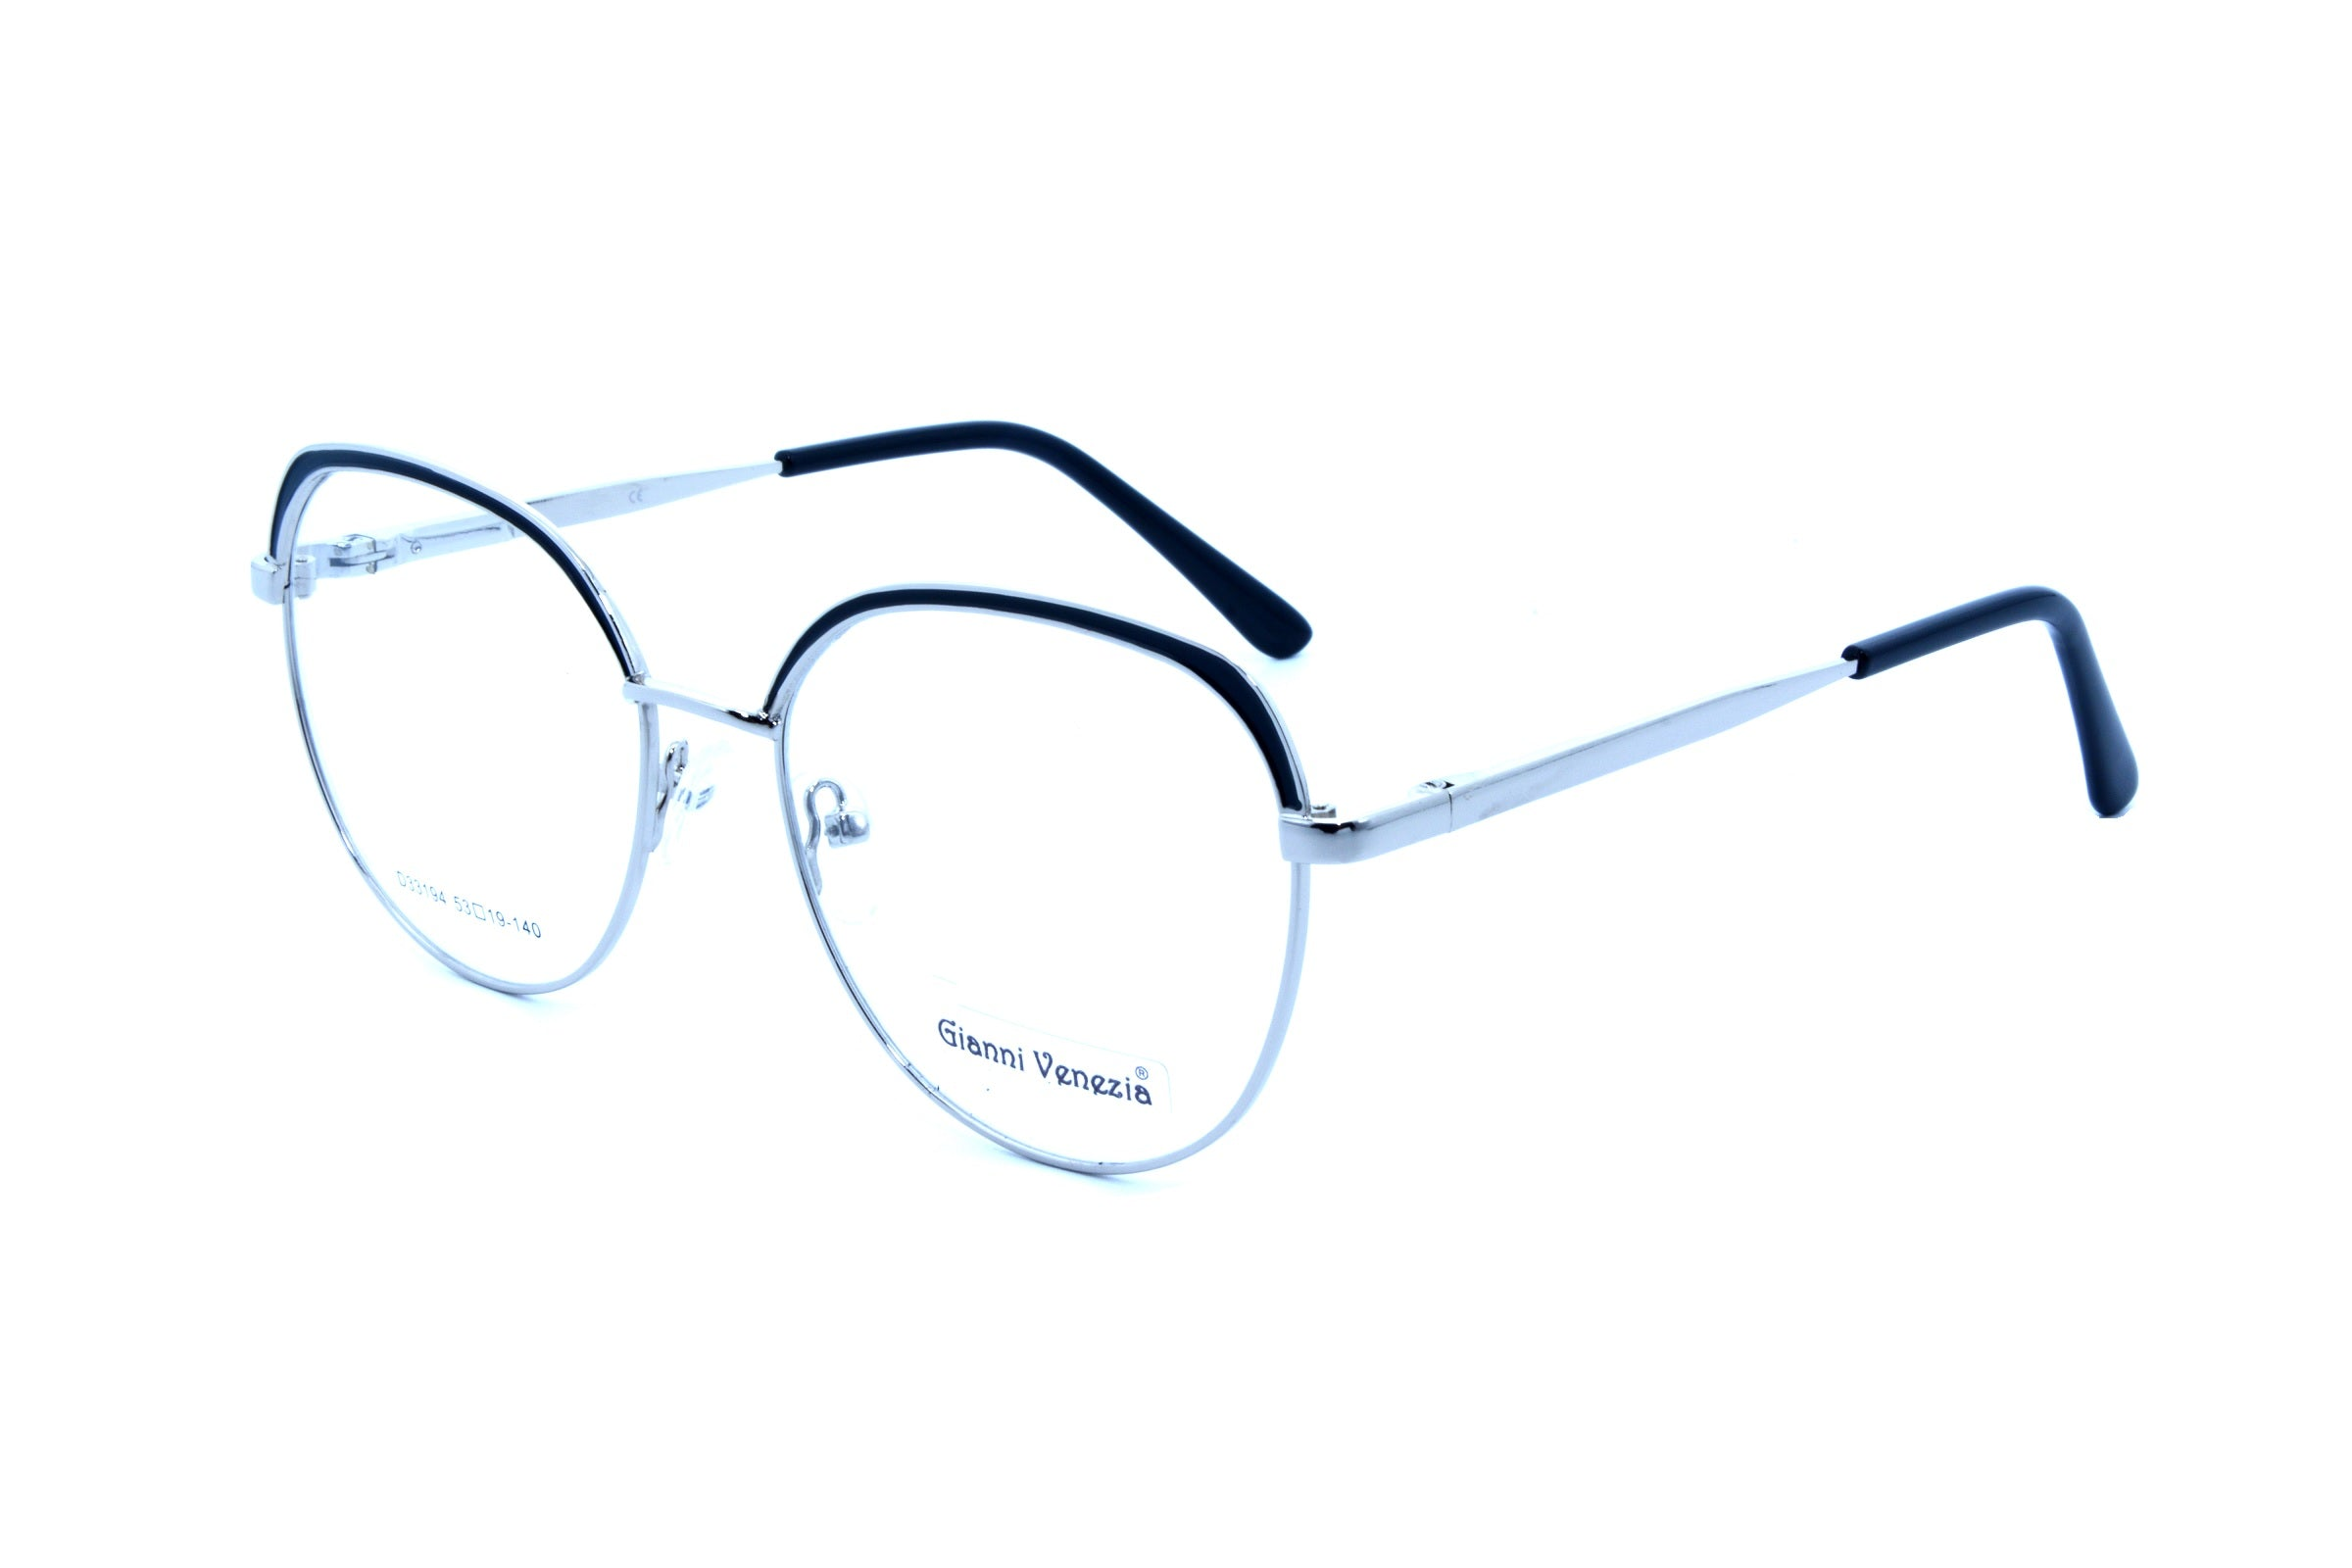 Gianni Vennezia eyewear 33194, C1 - Optics Trading